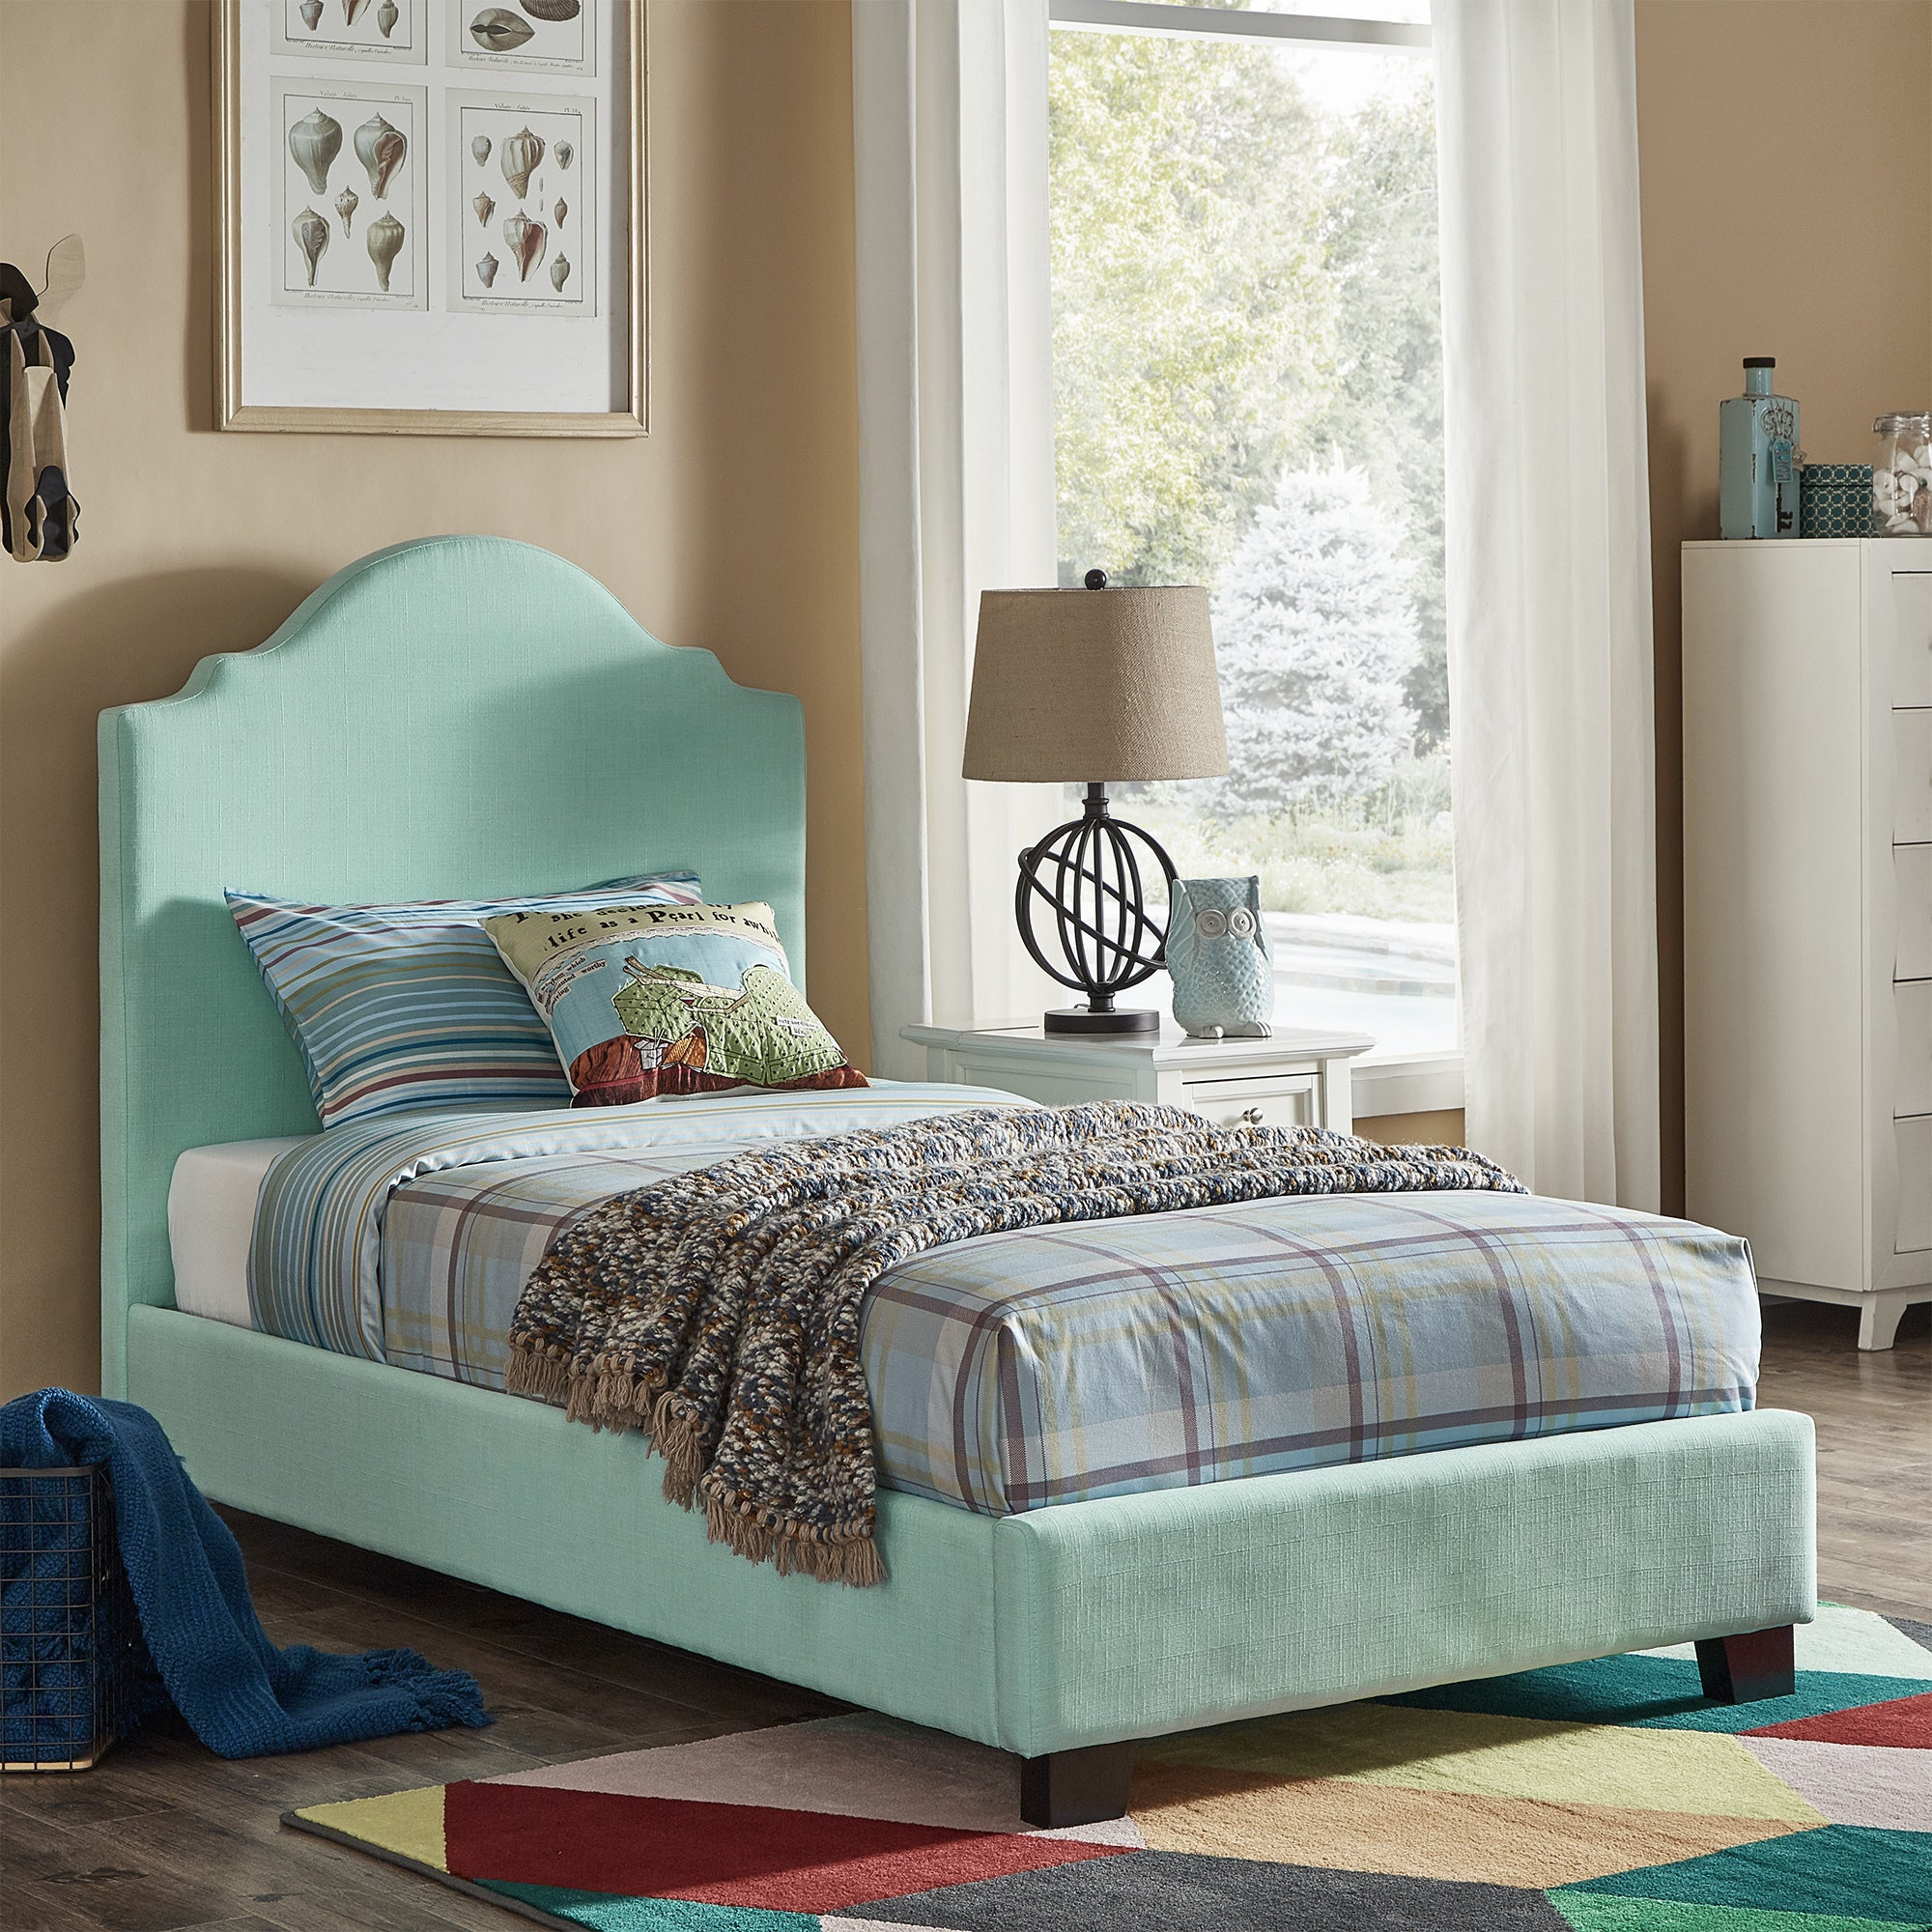 Cara Upholstered Twin Bed by iNSPIRE Q Junior - Free Shipping Today -  Overstock.com - 25819368